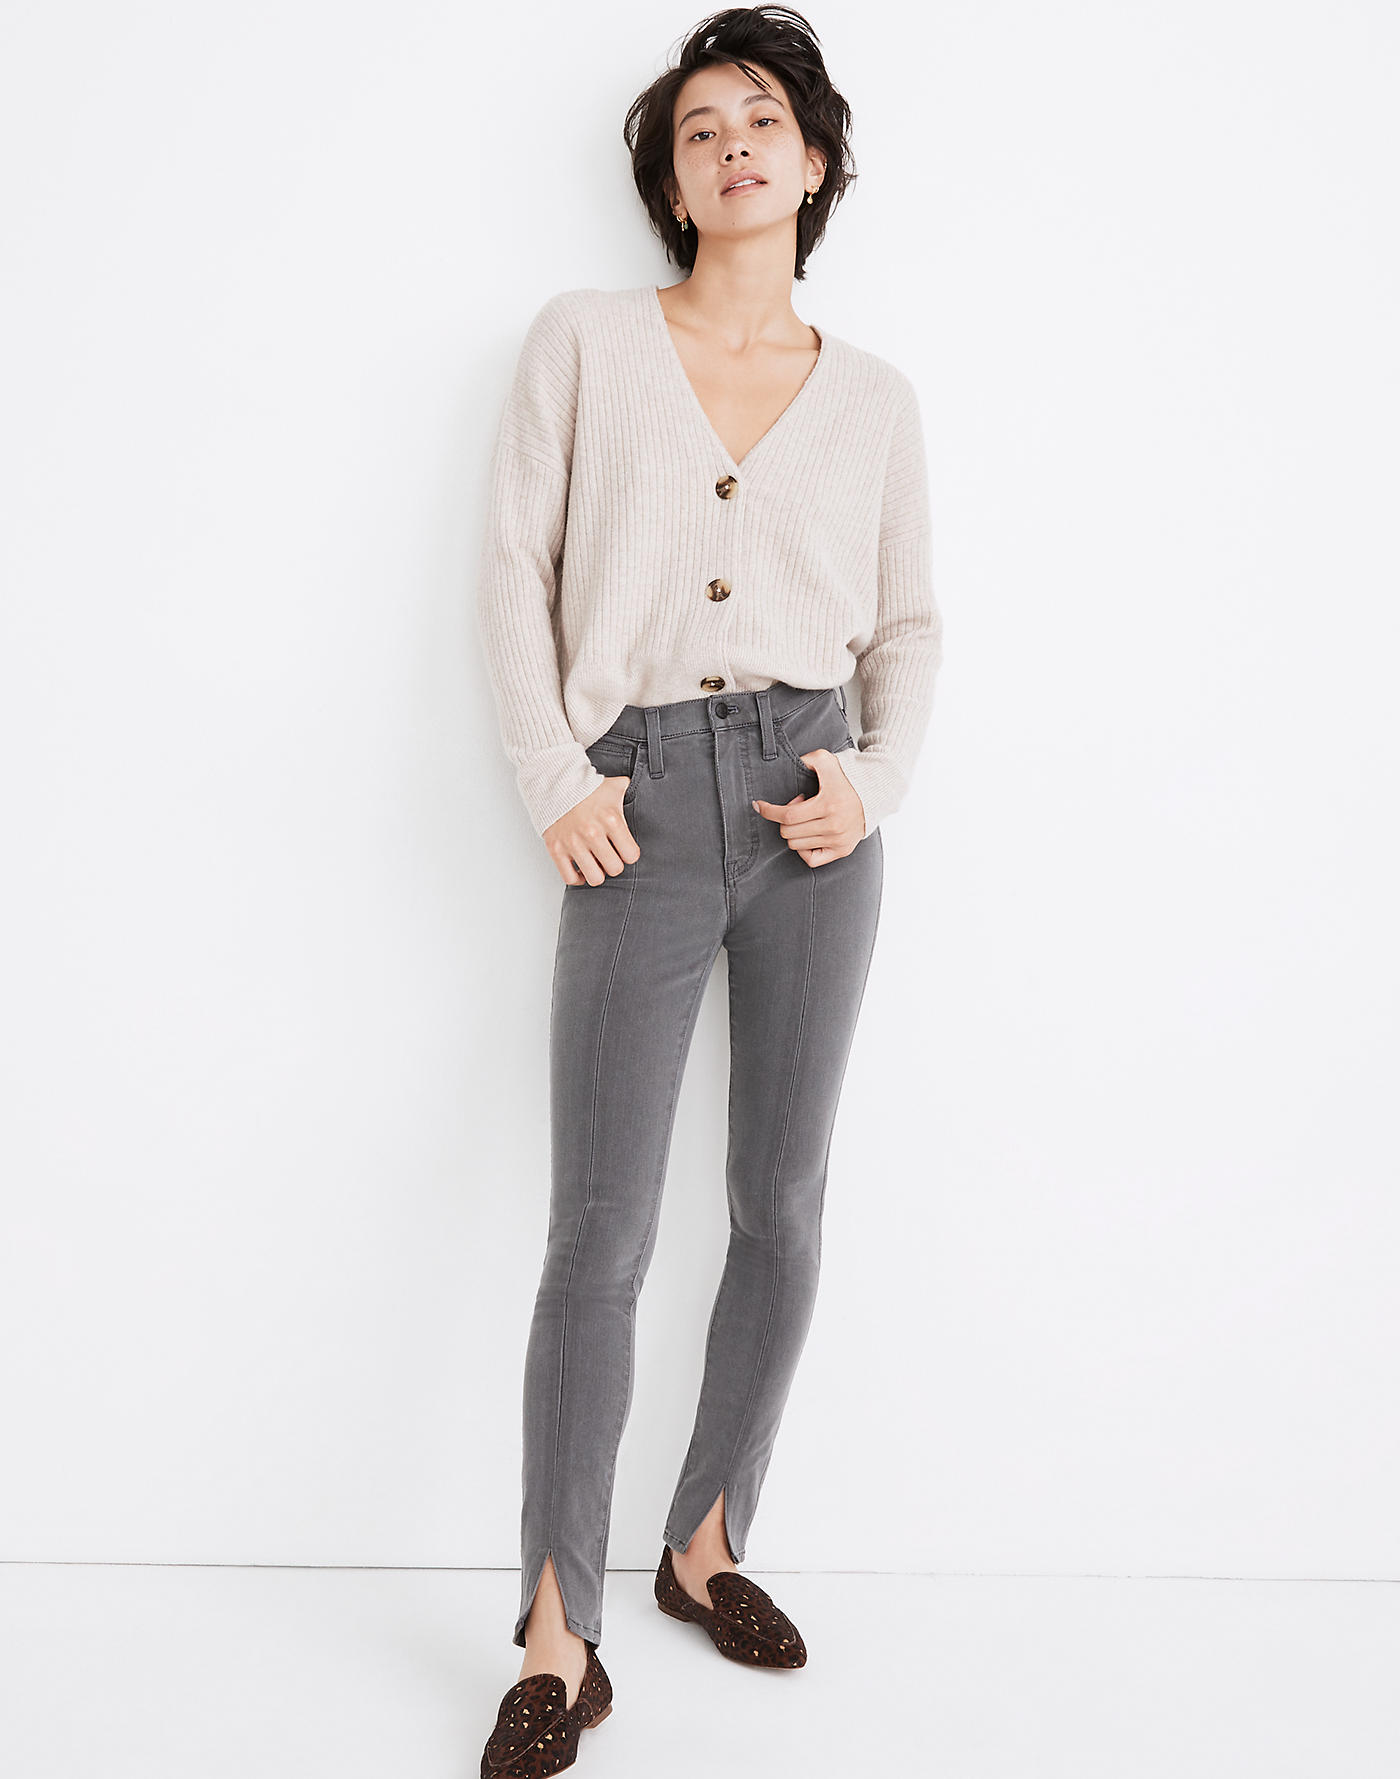 Madewell 10 High-Rise Roadtripper Jeans in Carlin Wash: Slit-Front Edition